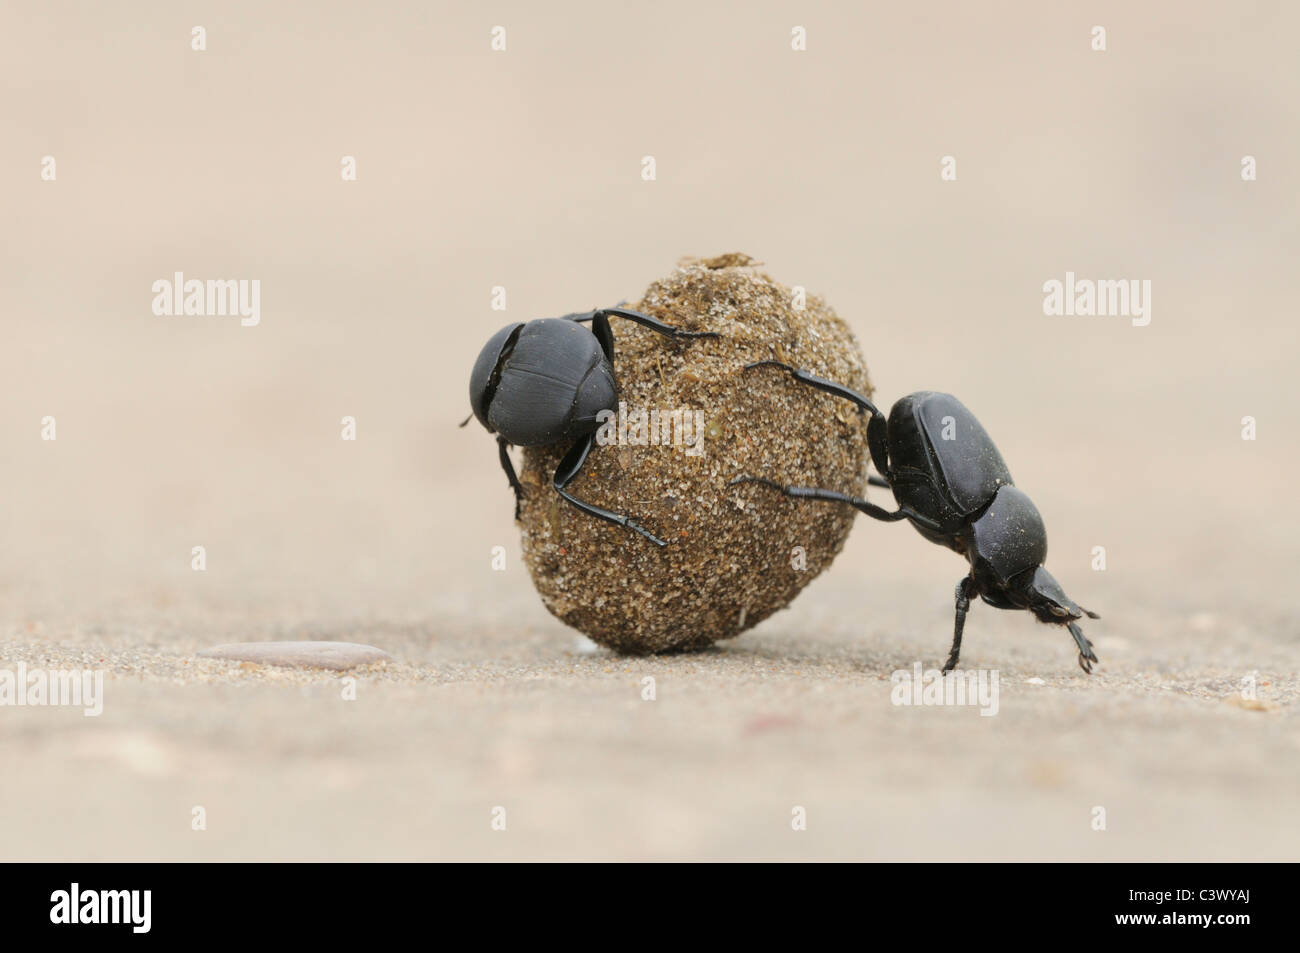 Dung Beetle (Scarabaeinae), adults rolling dung ball, Laredo, Webb County, South Texas, USA Stock Photo